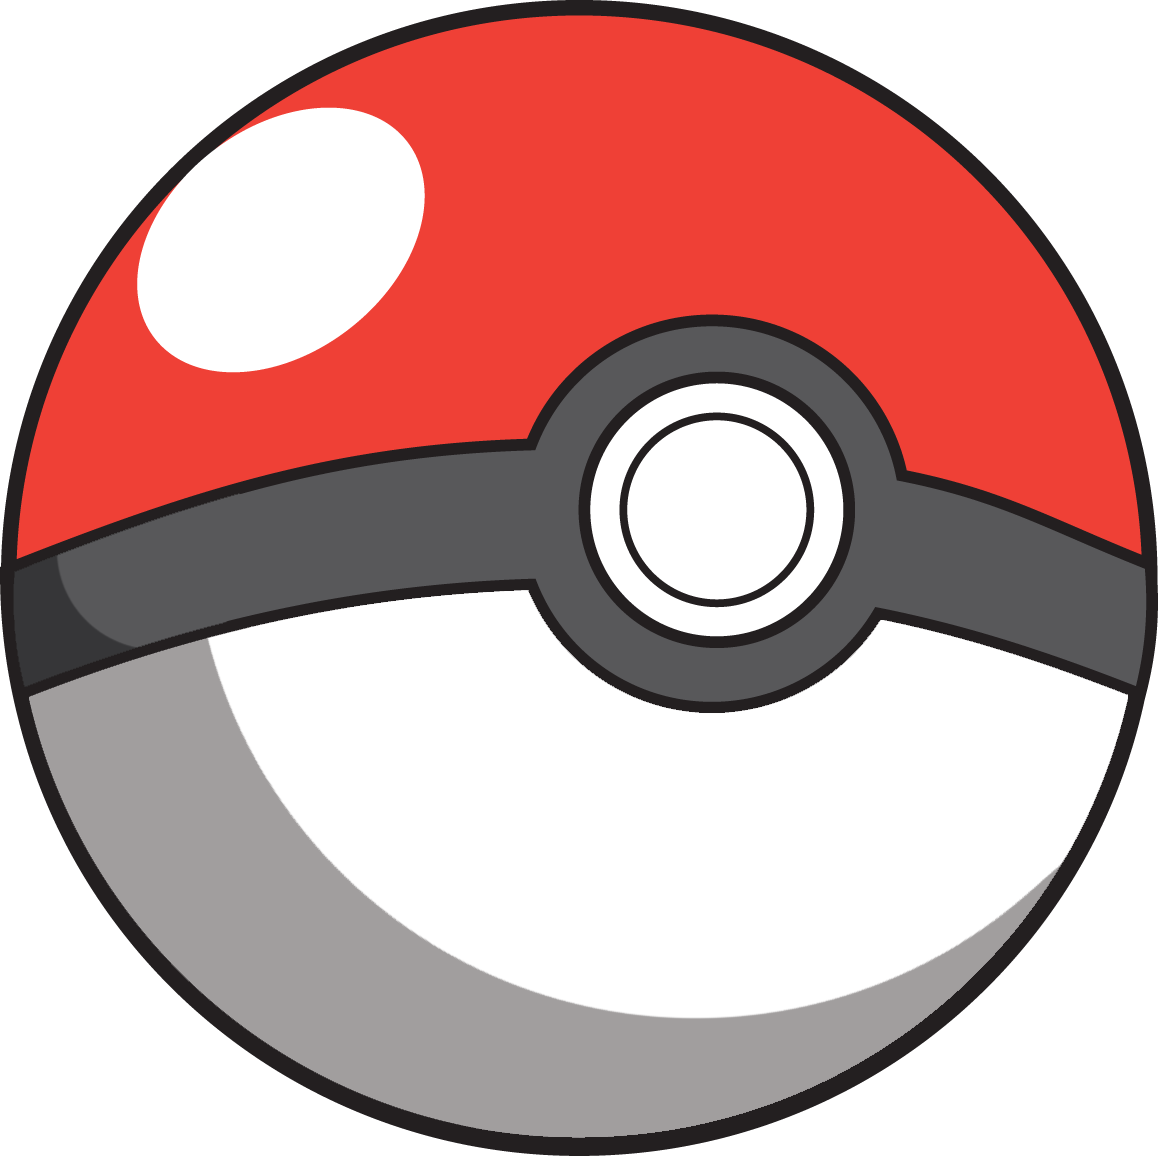 pokeball logo png